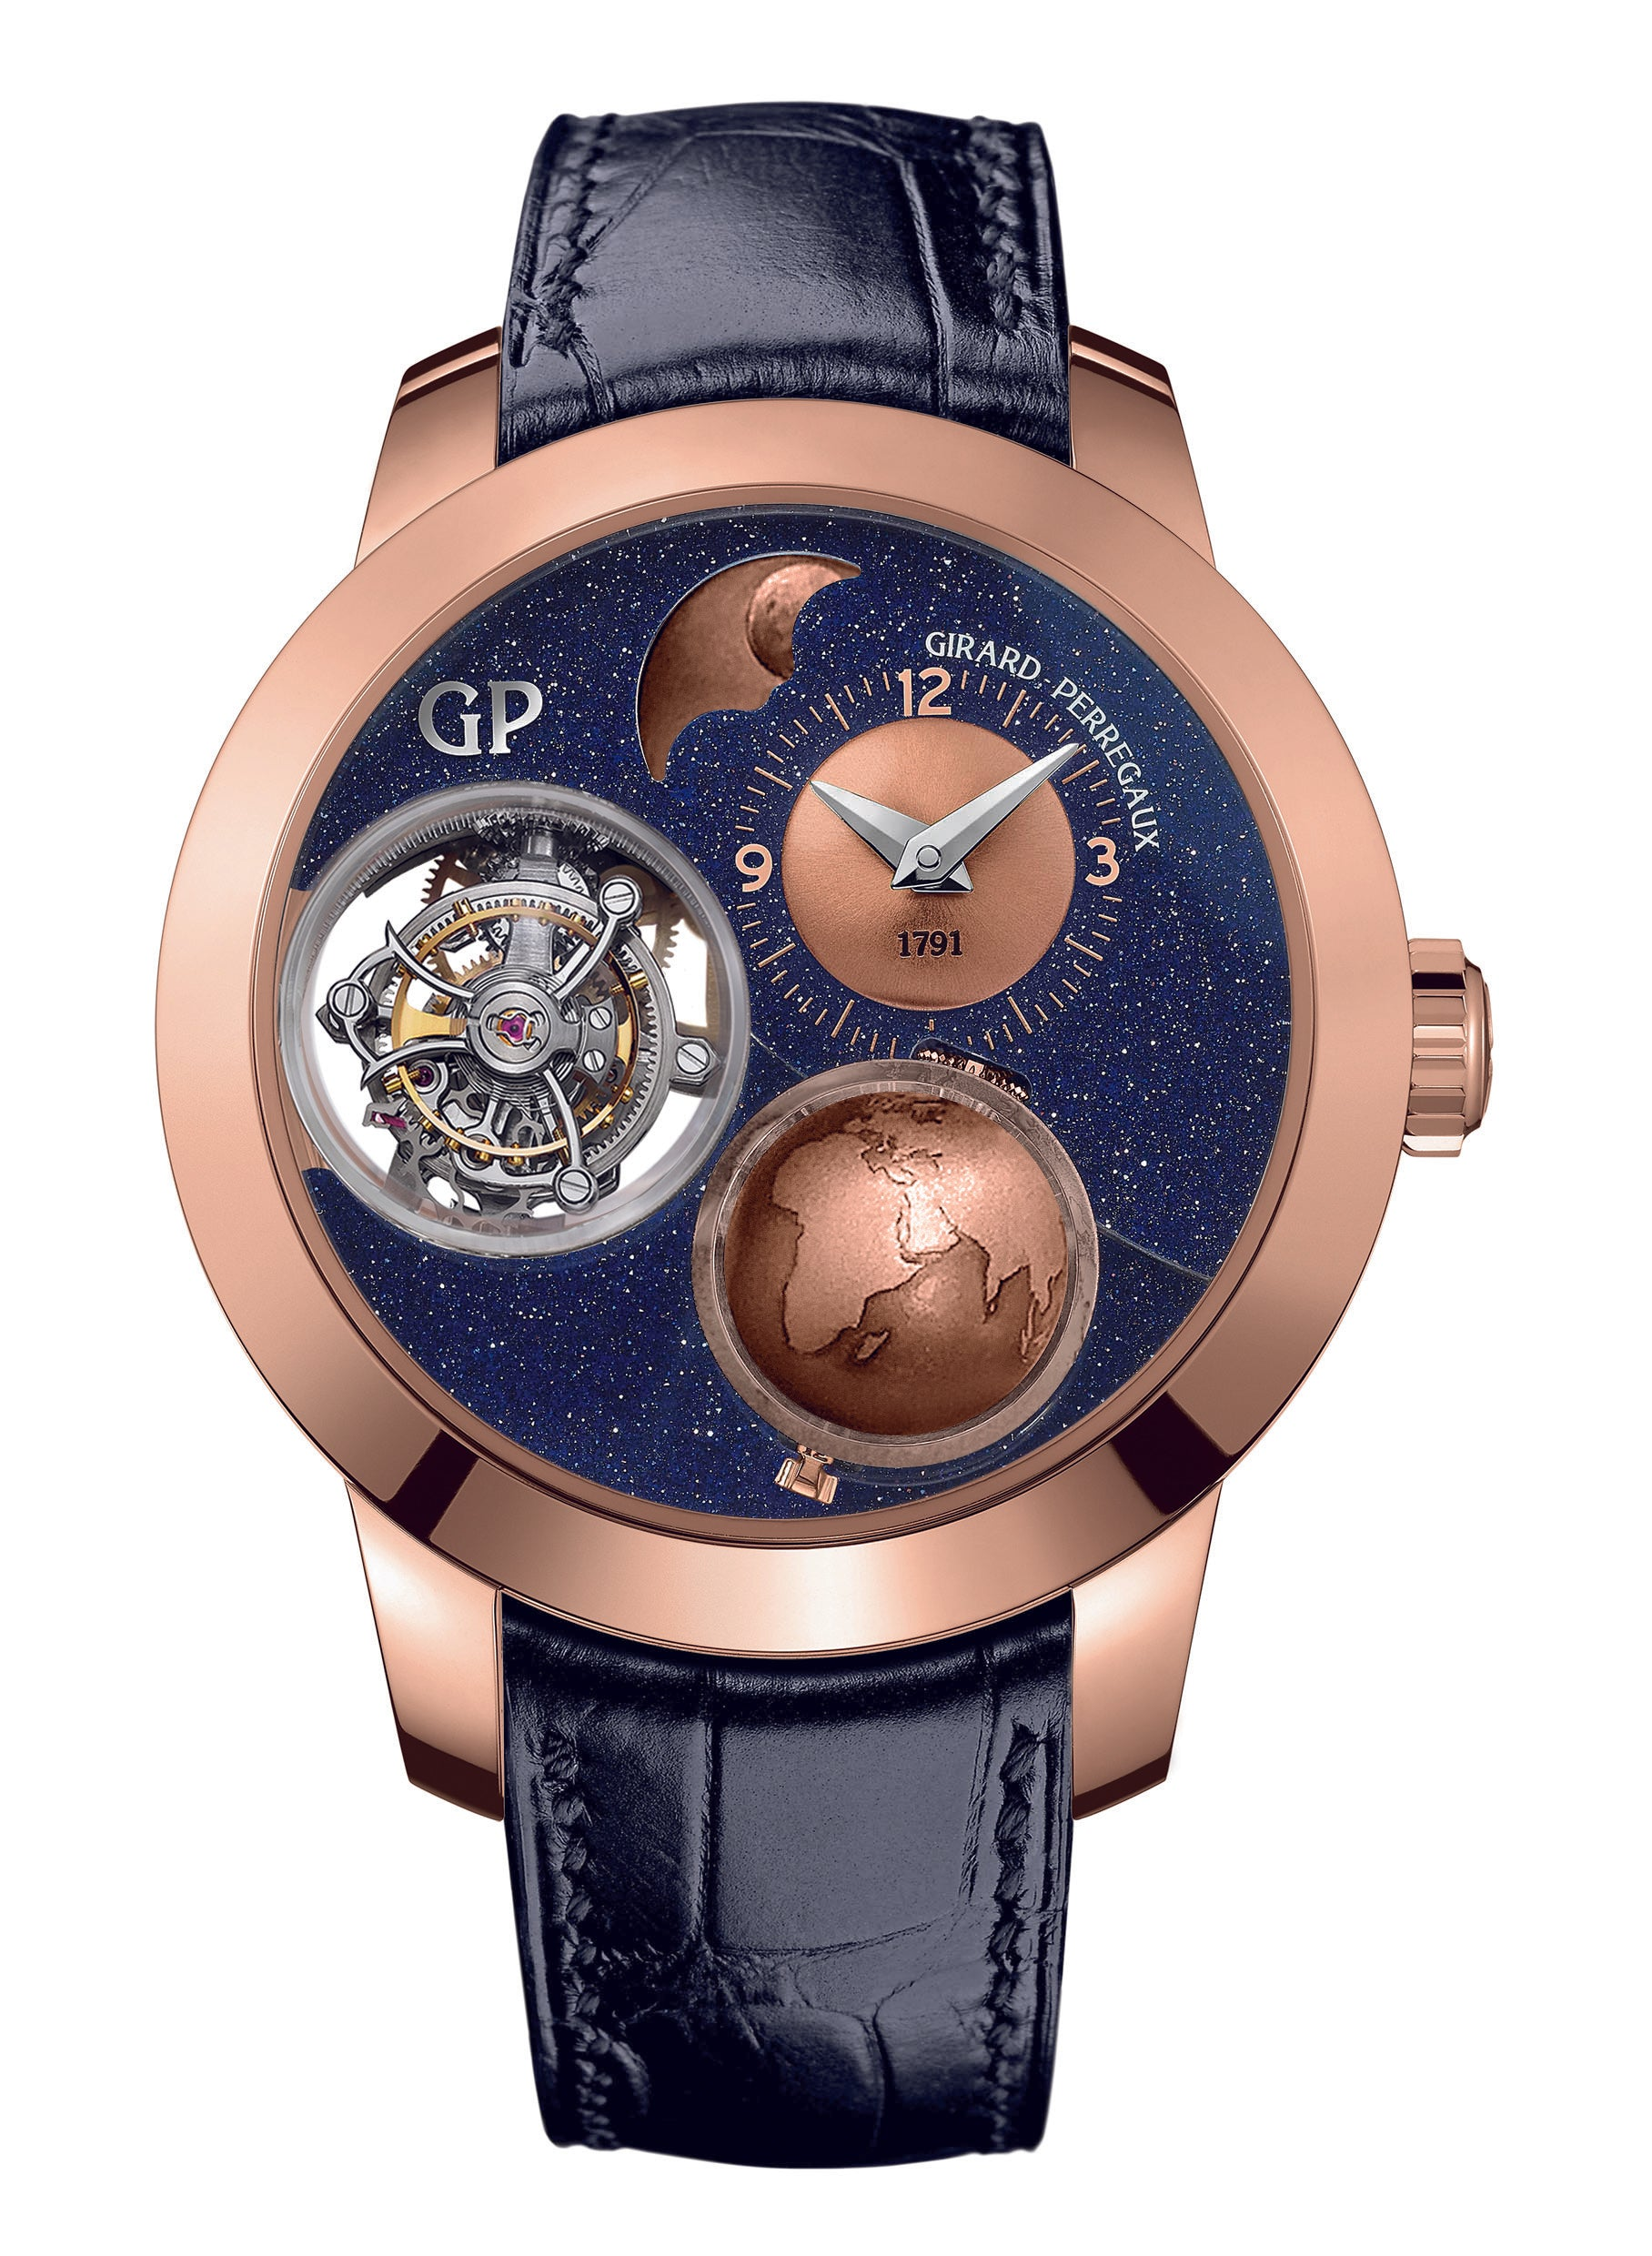 Girard Perregaux Planetarium Tri-Axial Tourbillon Dance of the cosmos